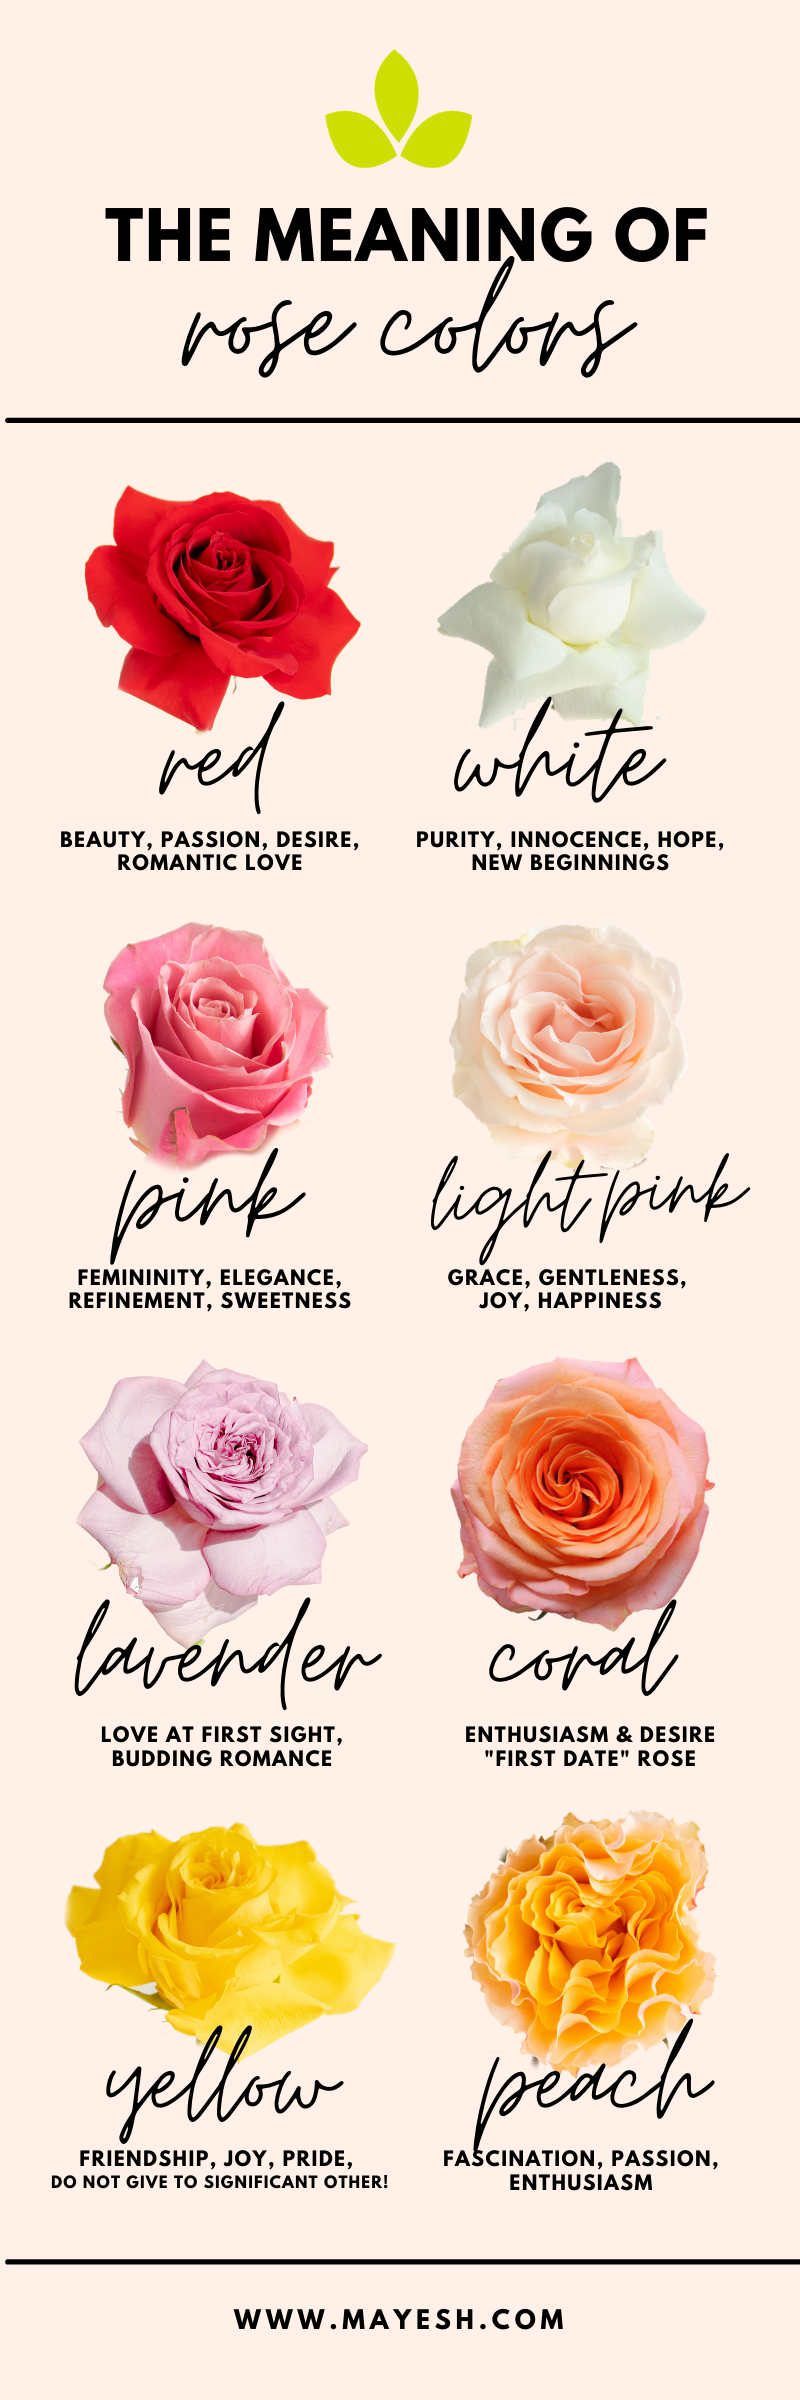 Rose-Color-Meaning-Infographic